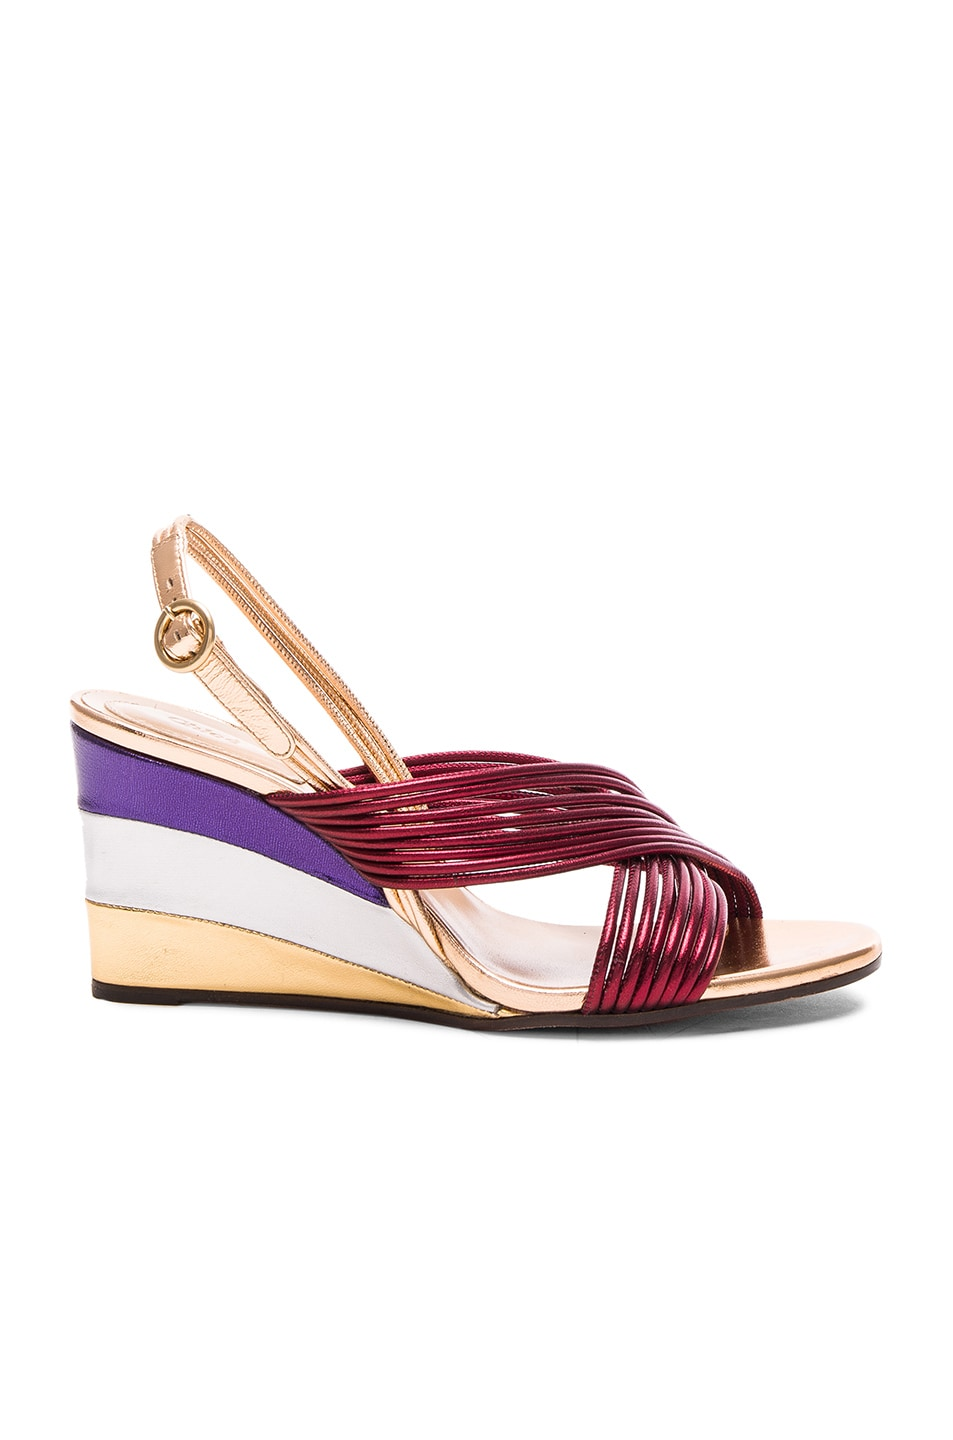 Image 1 of Chloe Leather Rainbow Sandals in Bordeaux Metallic